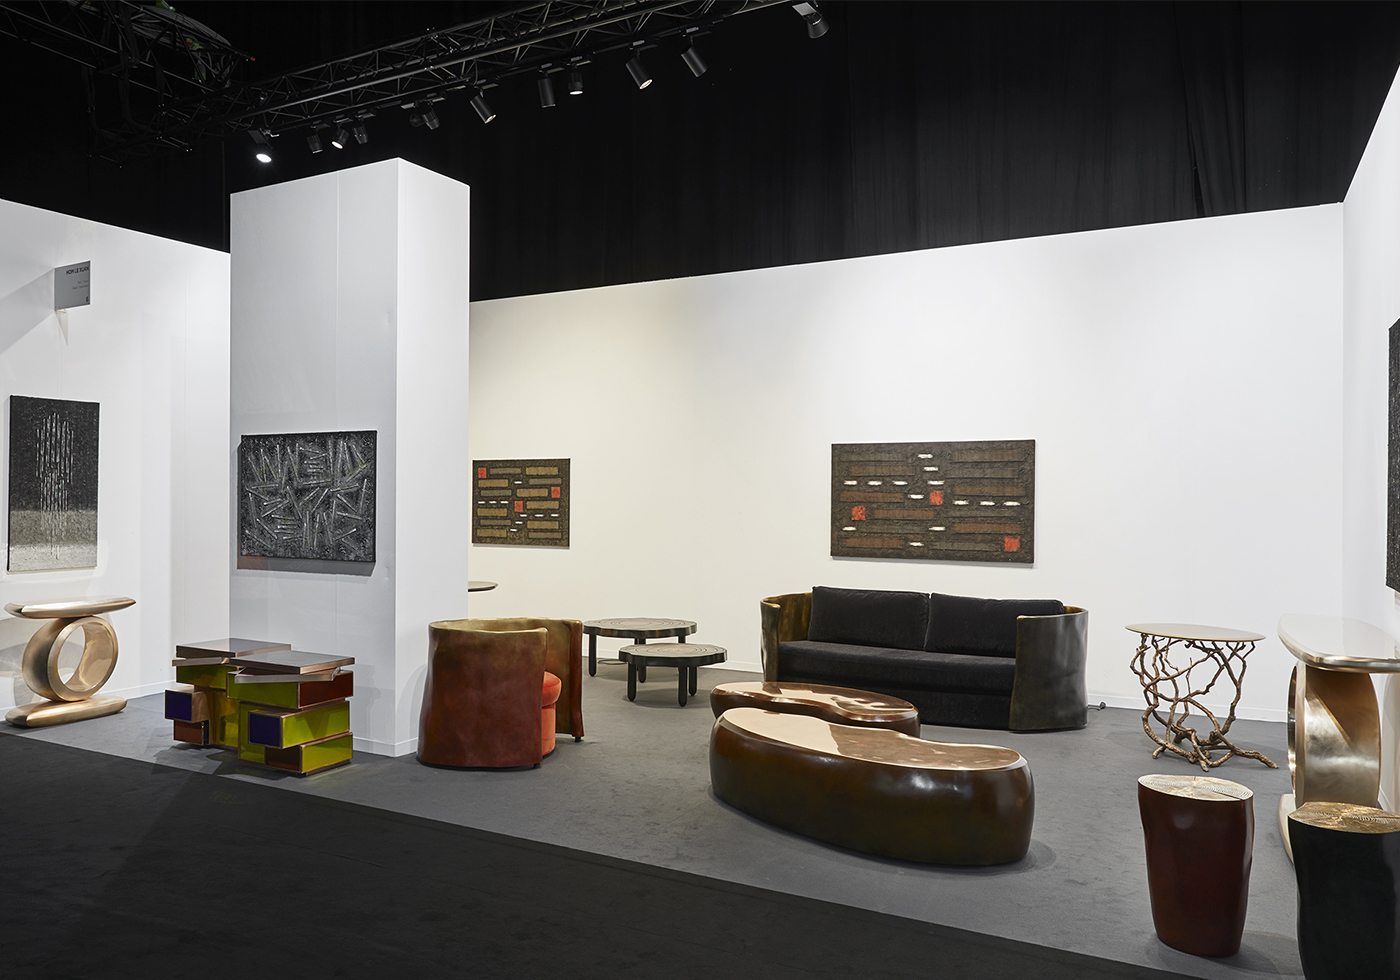 6 Contemporary Design's Exhibitors You Should Visit at PAD Geneve 2019 - Hom Le Xuan PAD Geneve 6 Contemporary Design's Exhibitors You Should Visit at PAD Geneve 2019 6 Contemporary Designs Exhibitors You Should Visit at PAD Geneve 2019 Hom Le Xuan